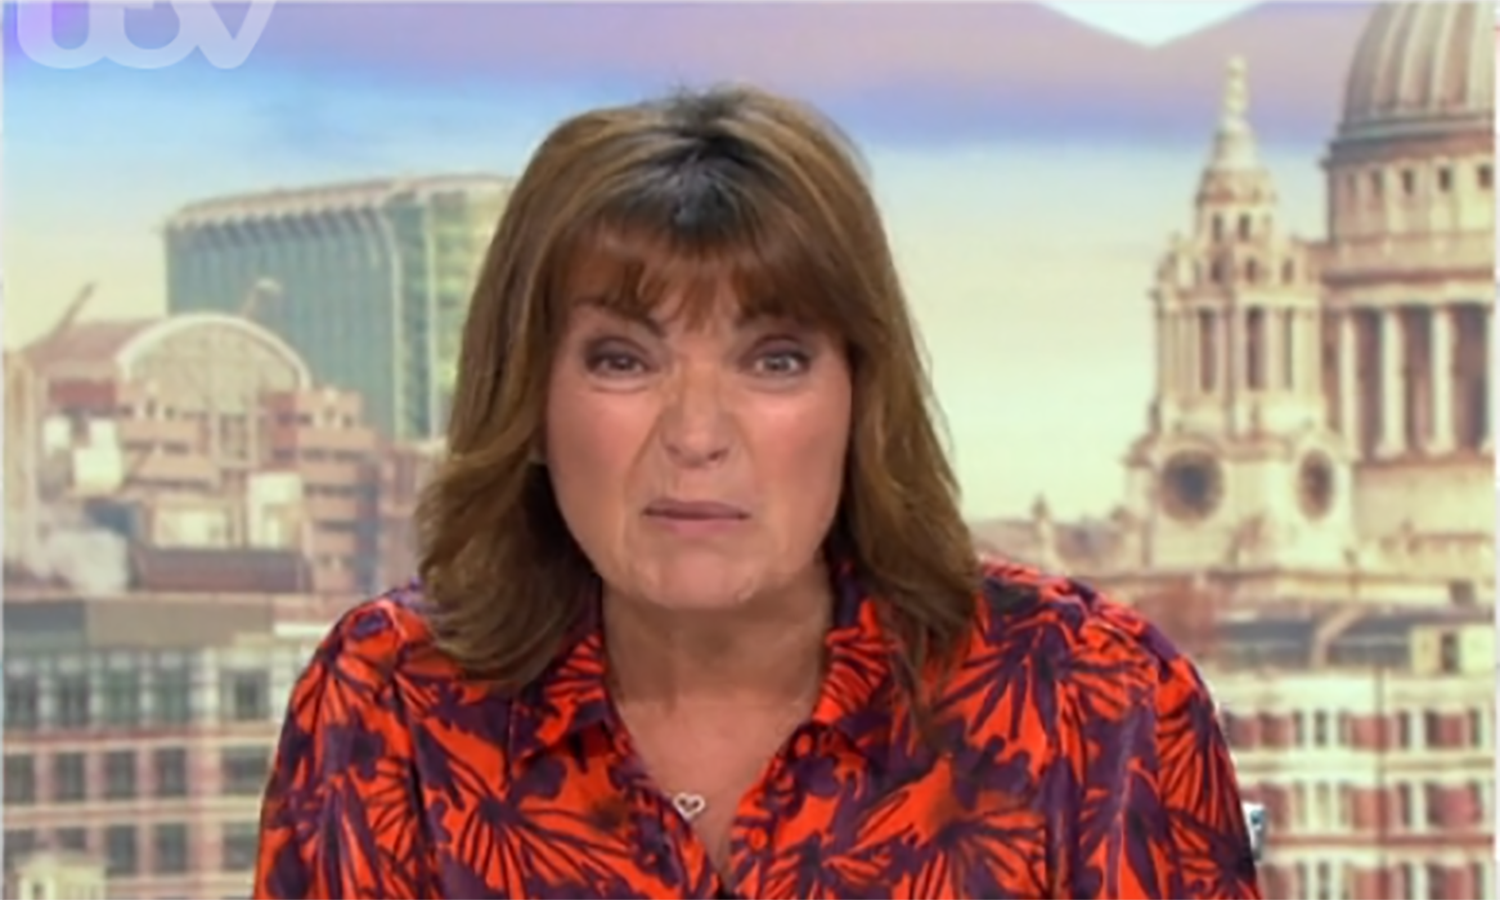 Lorraine Kelly mocks shoppers queuing outside stores for hours as they reopen